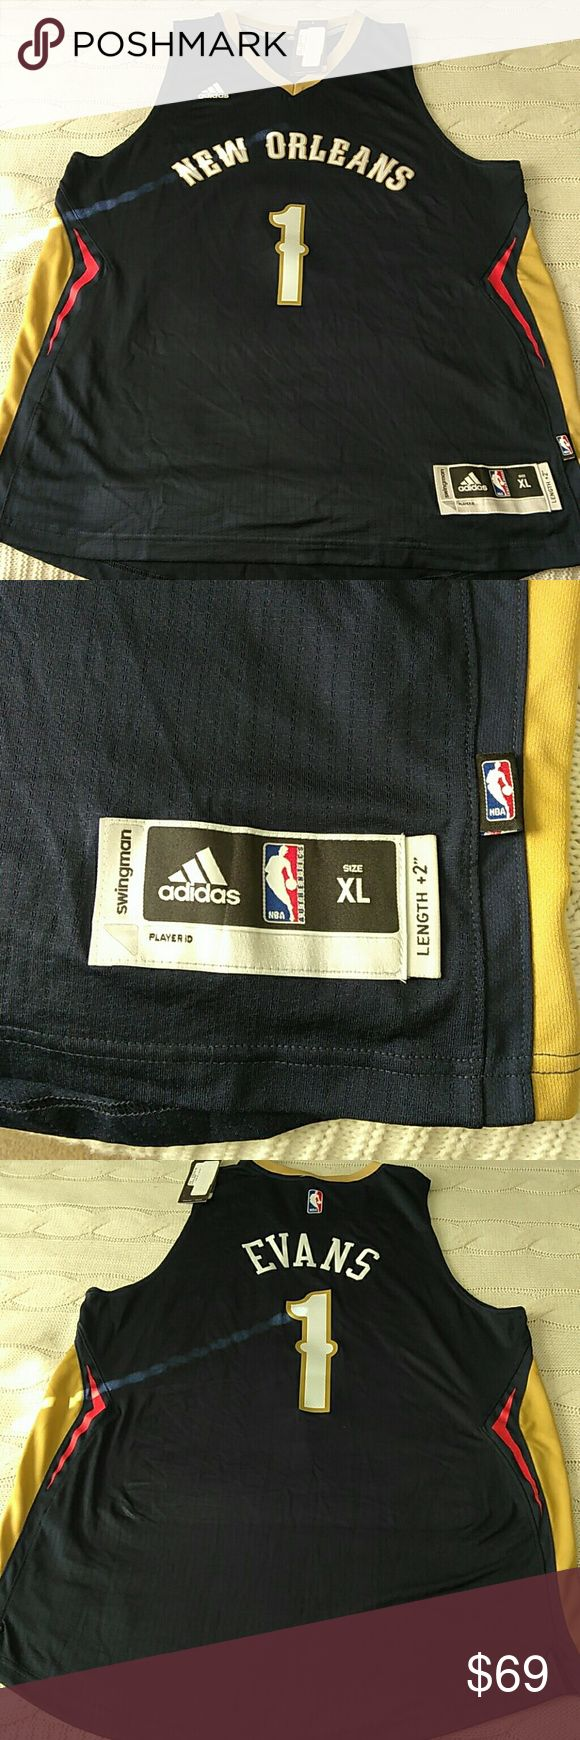 New Adidas NBA Store New Orleans #1 Evans Jersey New Adidas NBA Store New Orleans #1 Evans Swingman Jersey adidas Shirts